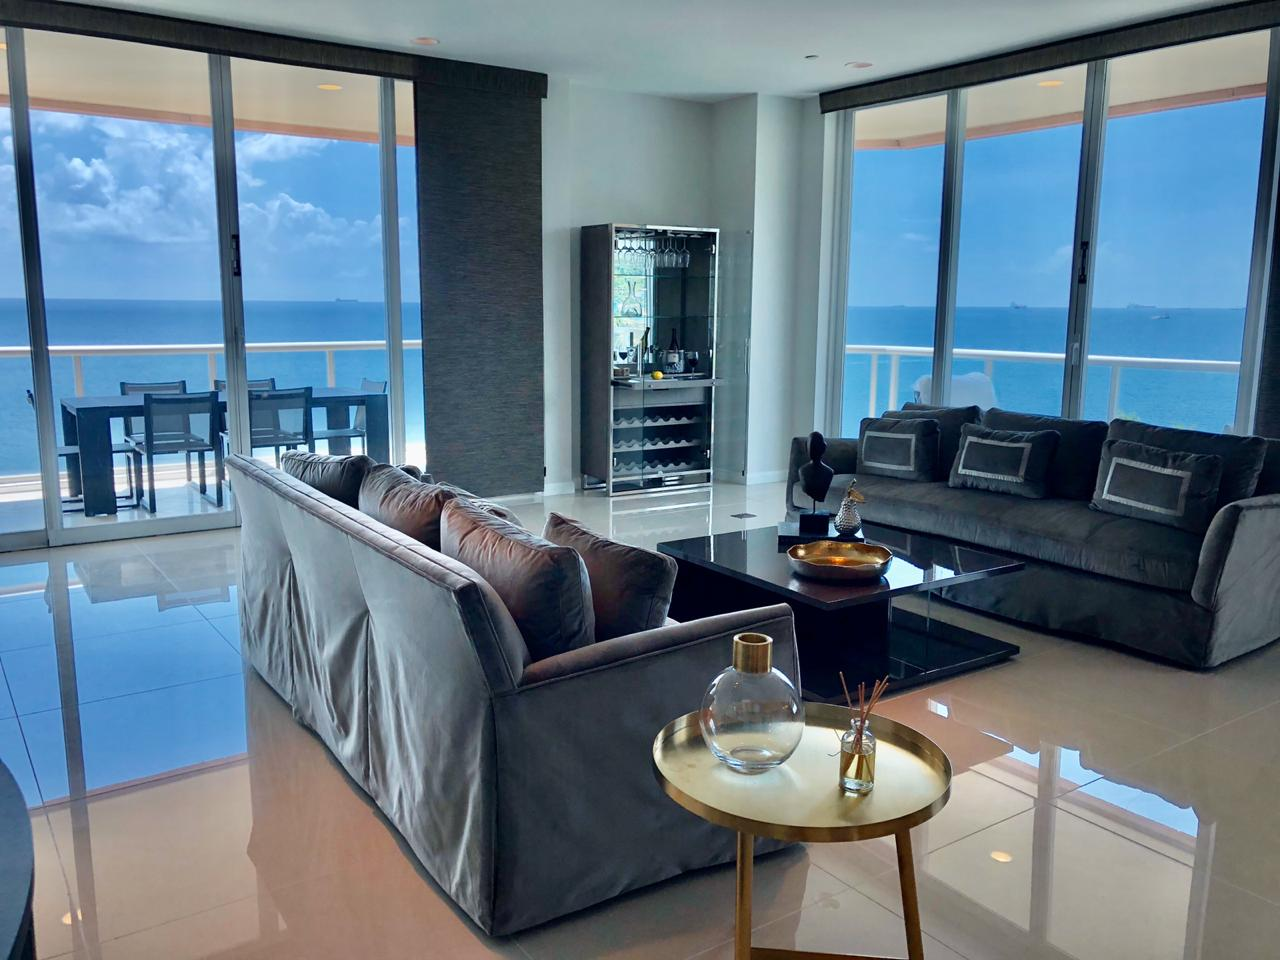 BEAUTIFULLY FURNISHED 3 BEDROOM RENAISSANCE FOR RENT